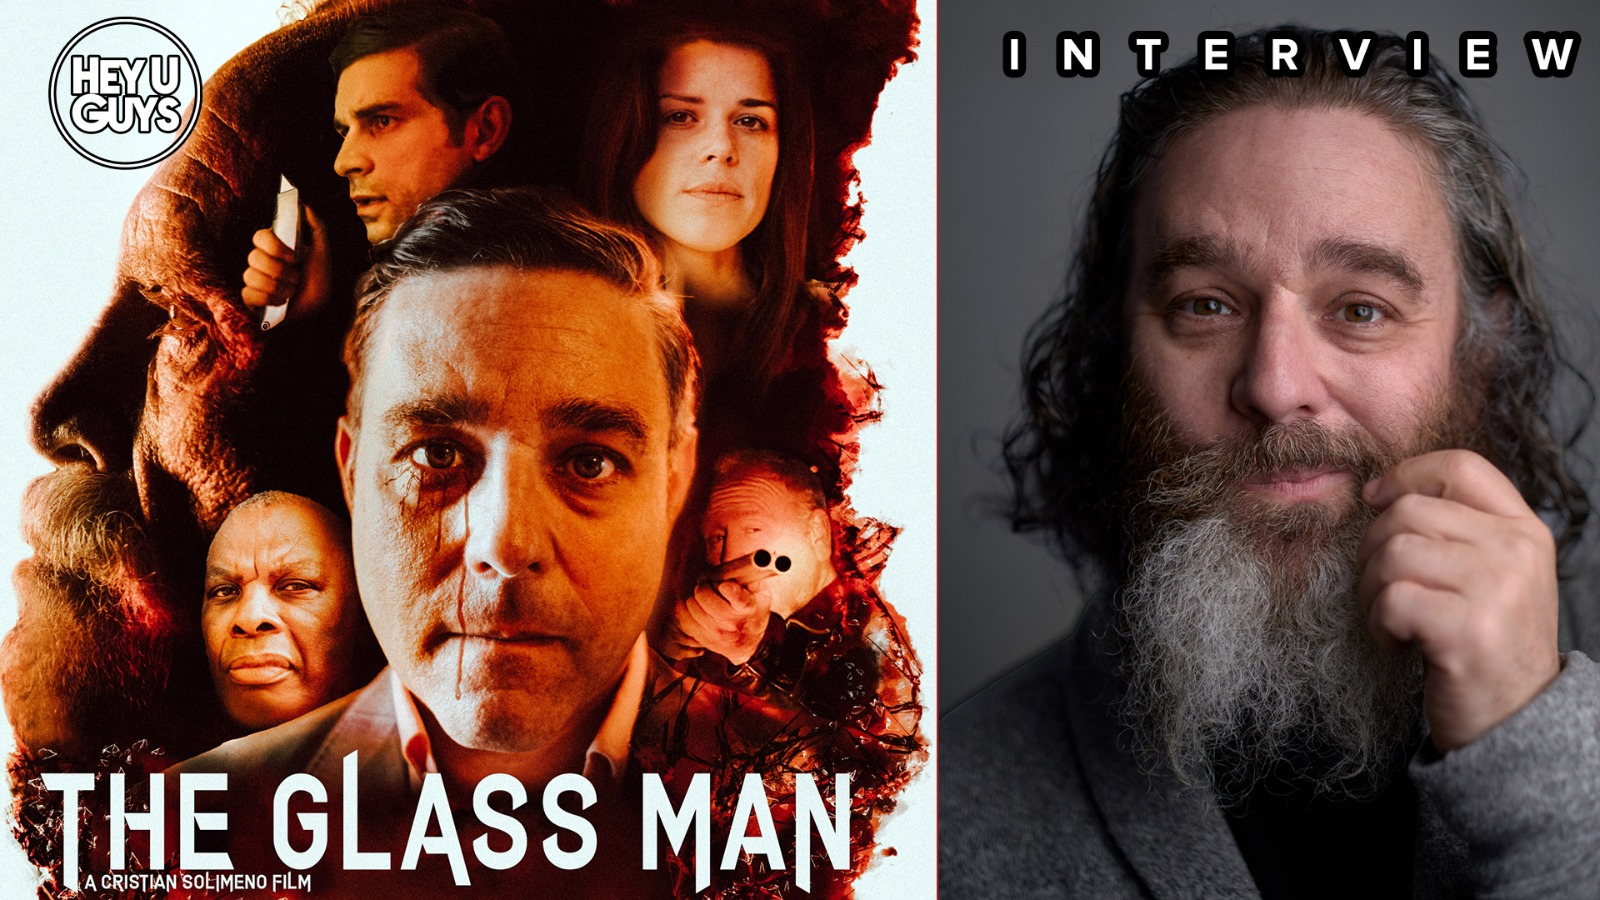 Andy Nyman The Glass Man interview